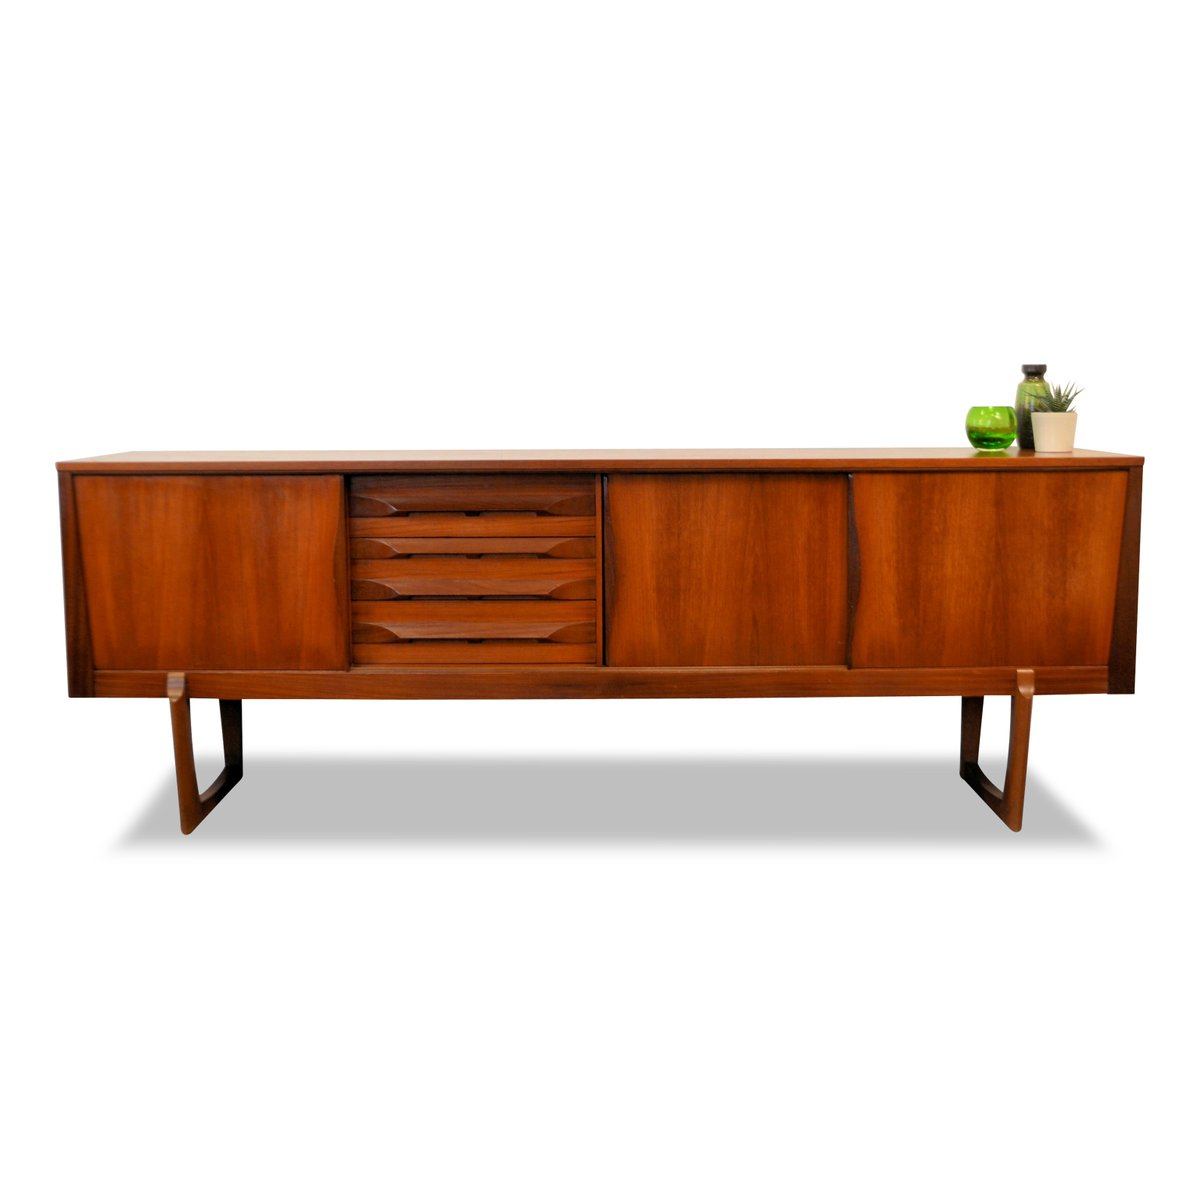 mid century modern teak sideboard from elliots for sale at. Black Bedroom Furniture Sets. Home Design Ideas